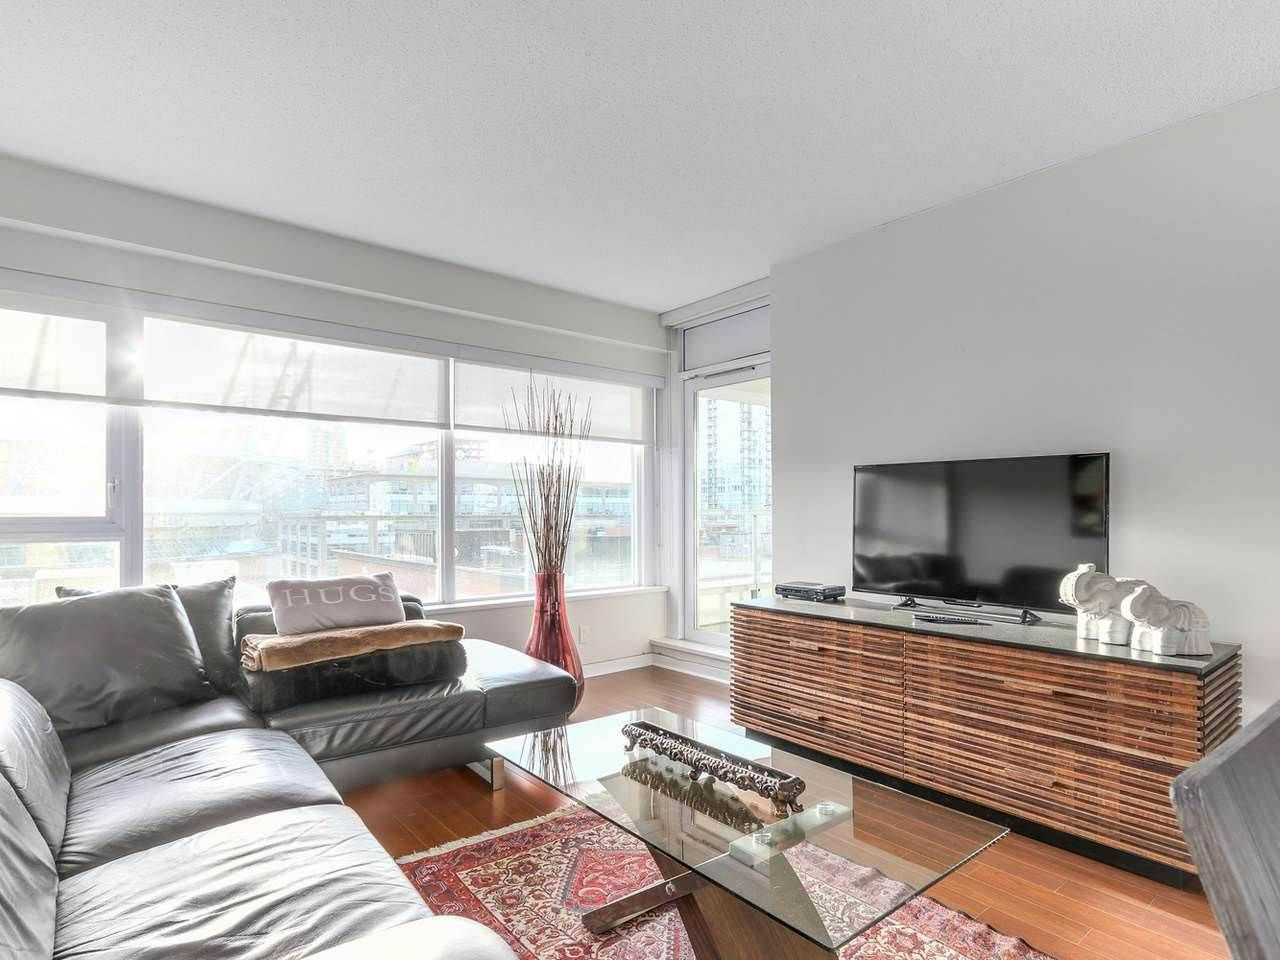 """Main Photo: 605 821 CAMBIE Street in Vancouver: Downtown VW Condo for sale in """"Raffles on Robson"""" (Vancouver West)  : MLS®# R2450056"""